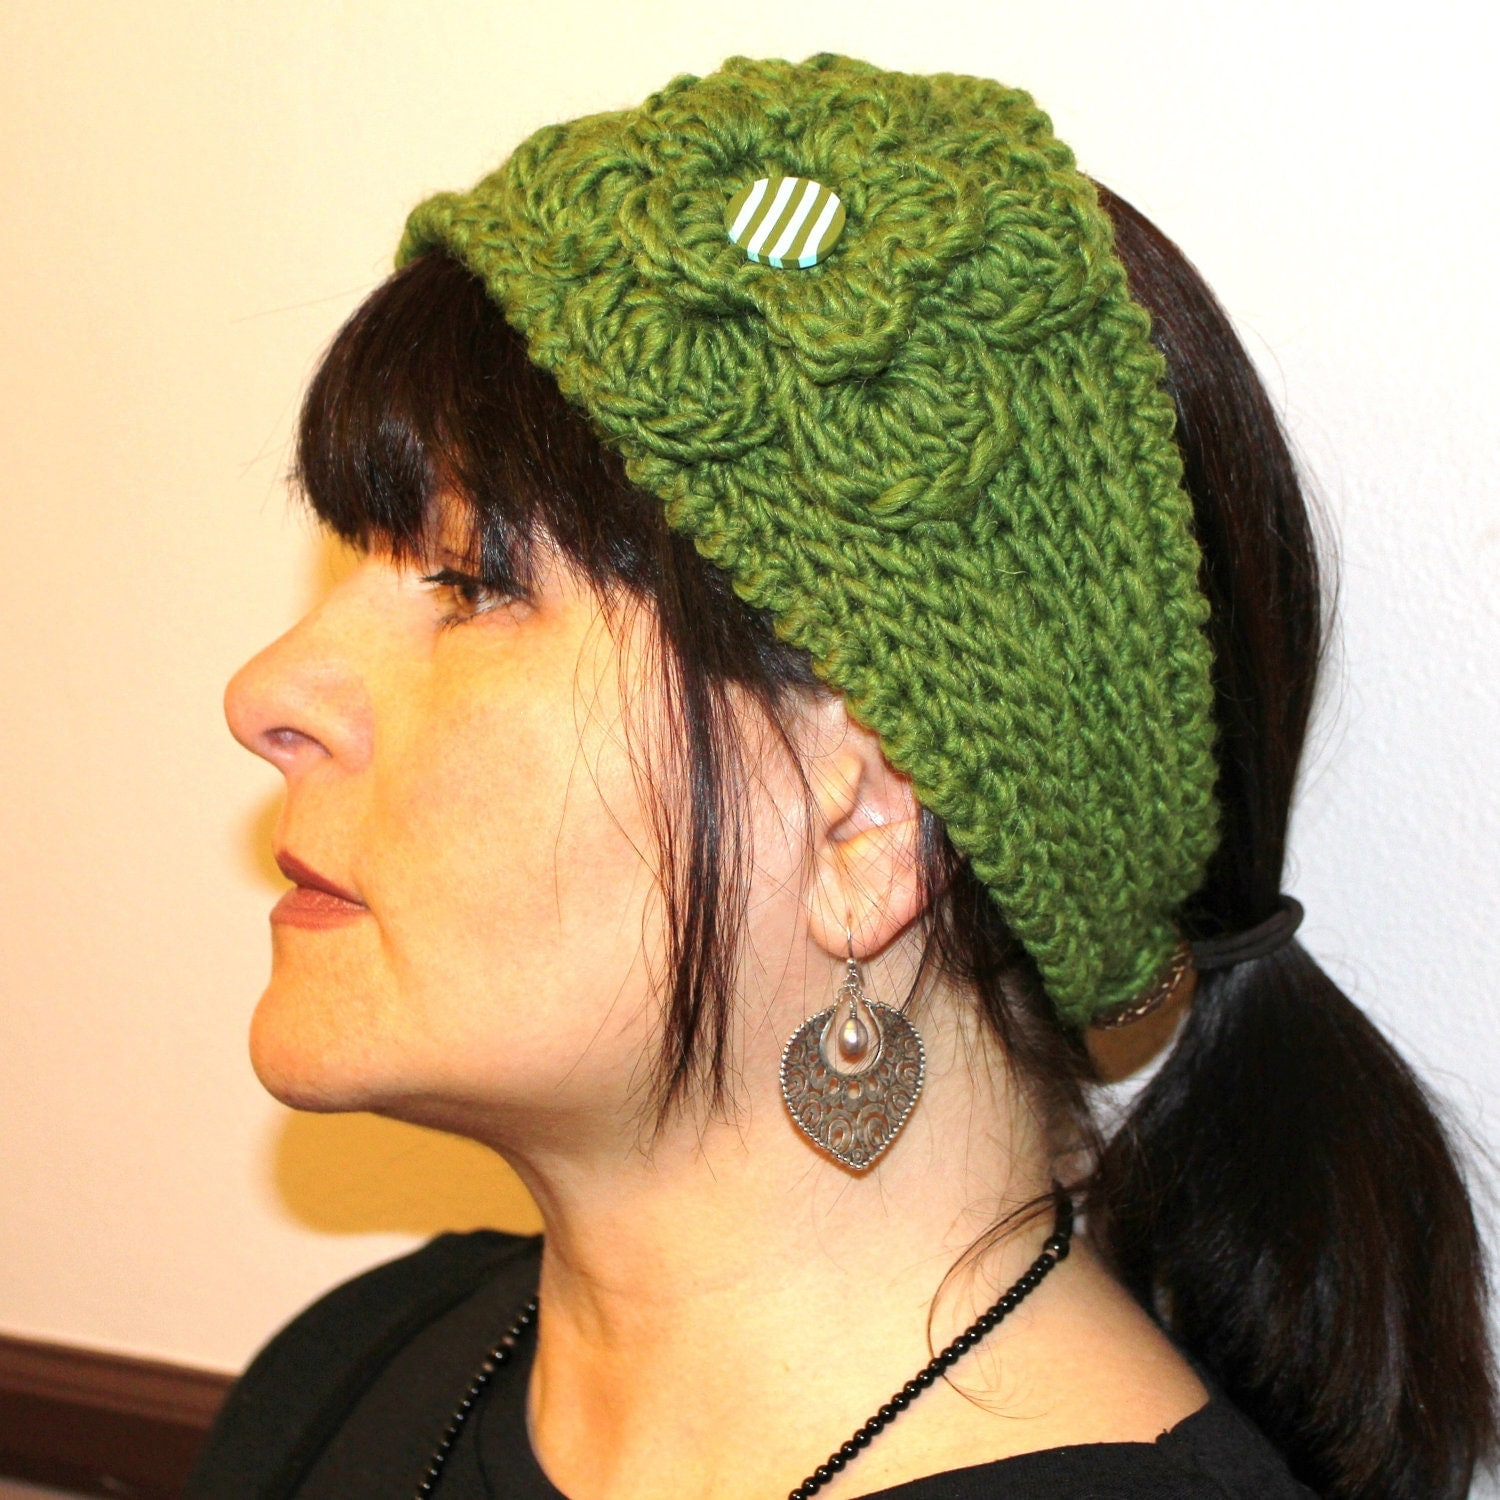 CROCHET PATTERN Fast Crochet Headband Kayla by AbsoluteKnits